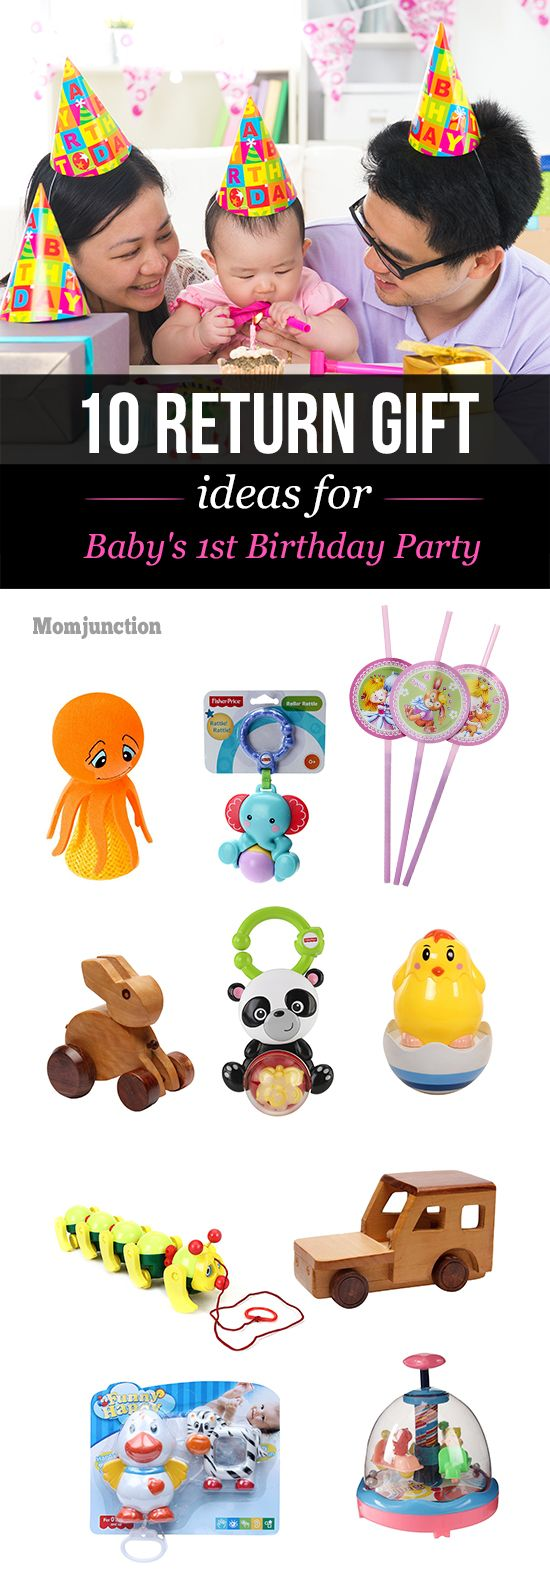 10 Awesome Return Gift Ideas For Your Baby's 1st Birthday Party